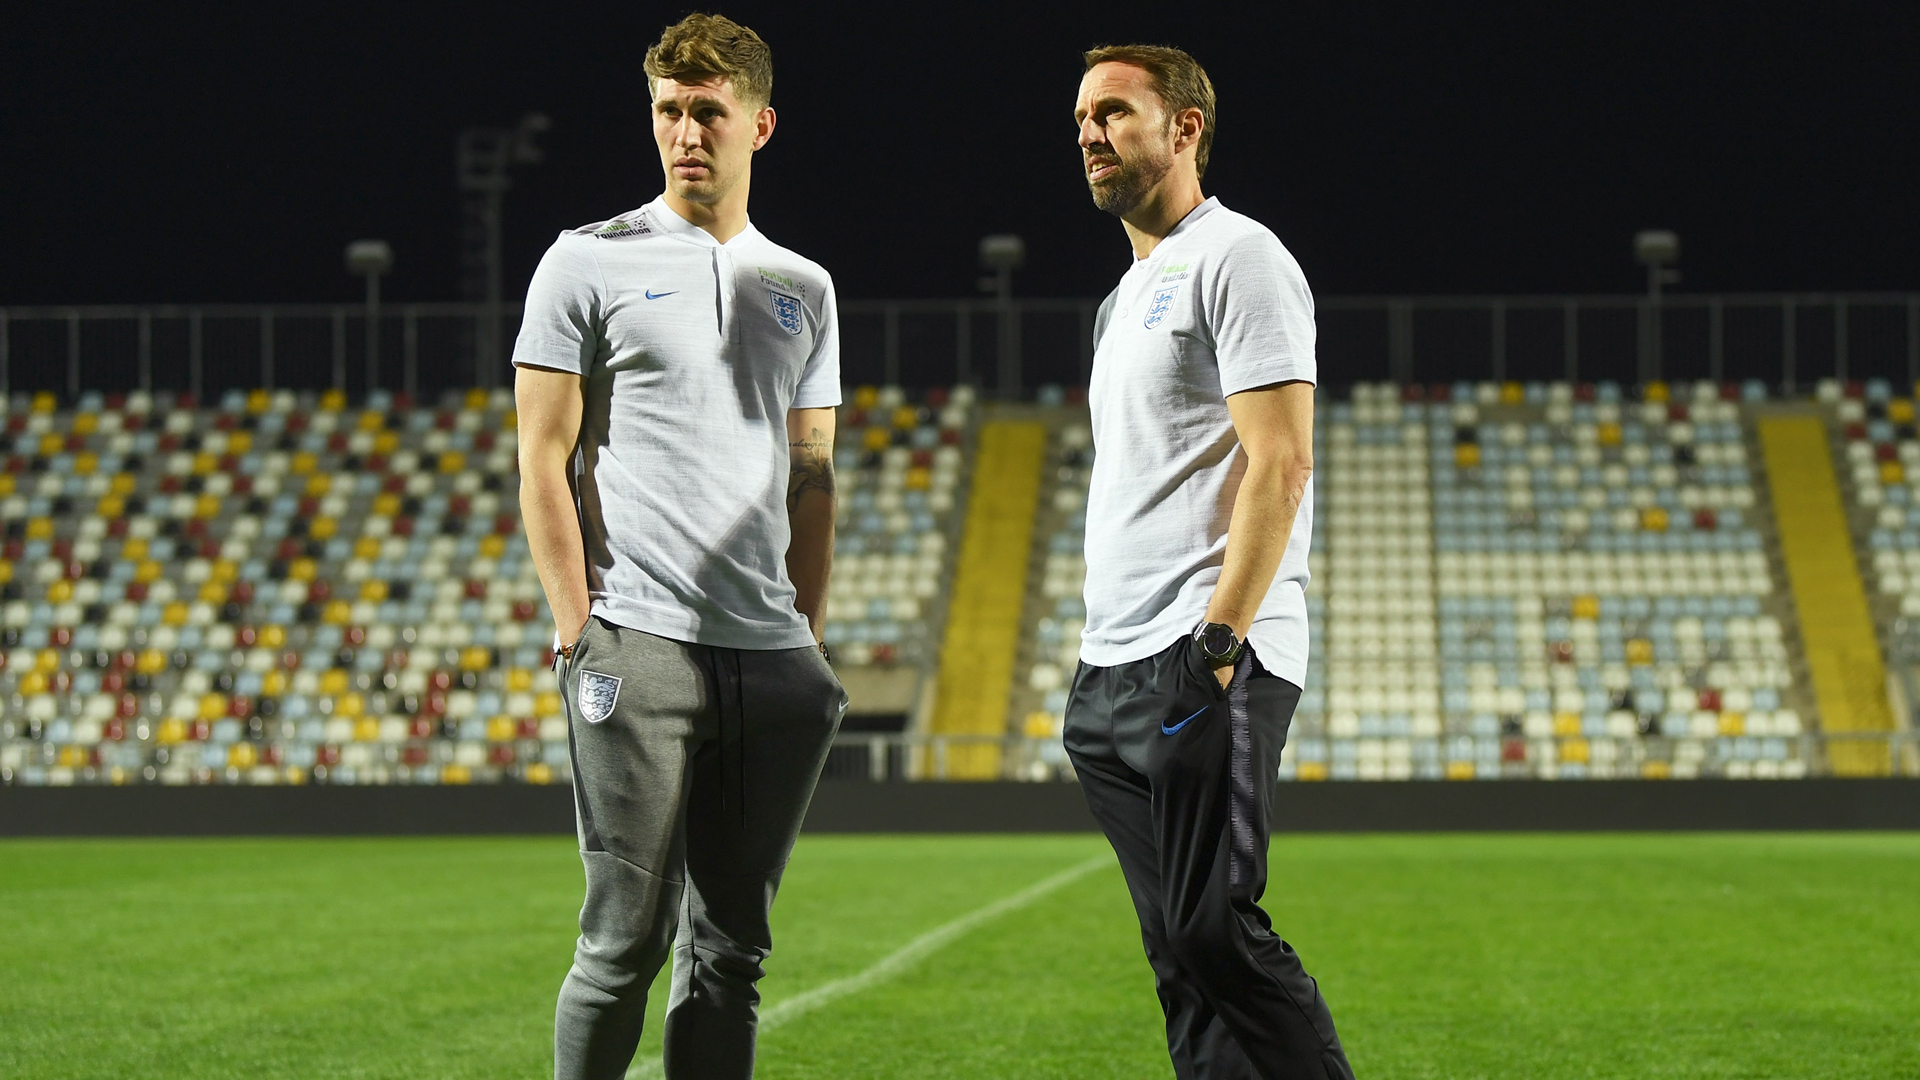 Nations League: Gareth Southgate explains England defensive changes